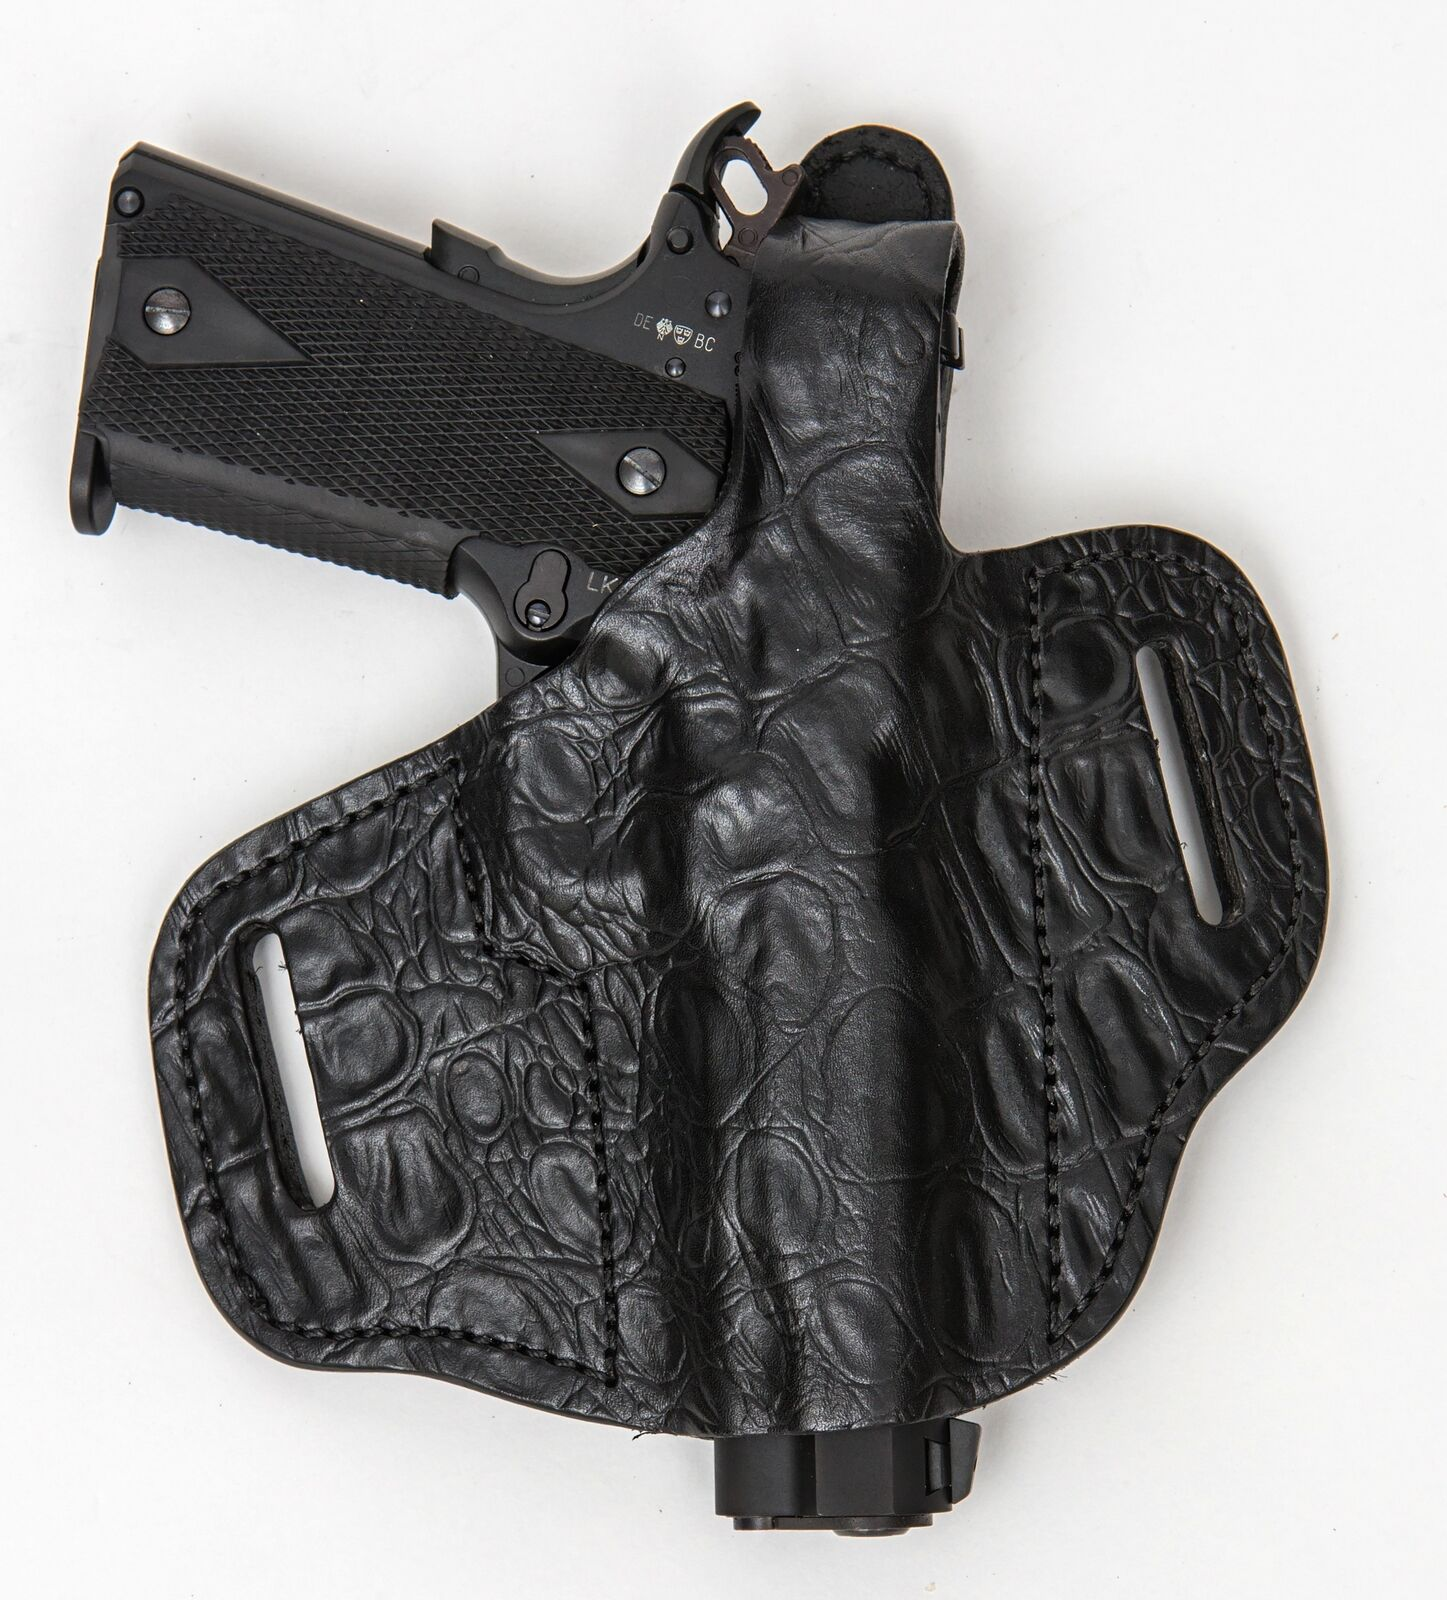 On Duty Conceal RH LH OWB Leather Gun Holster For Sig Sauer P220 P226